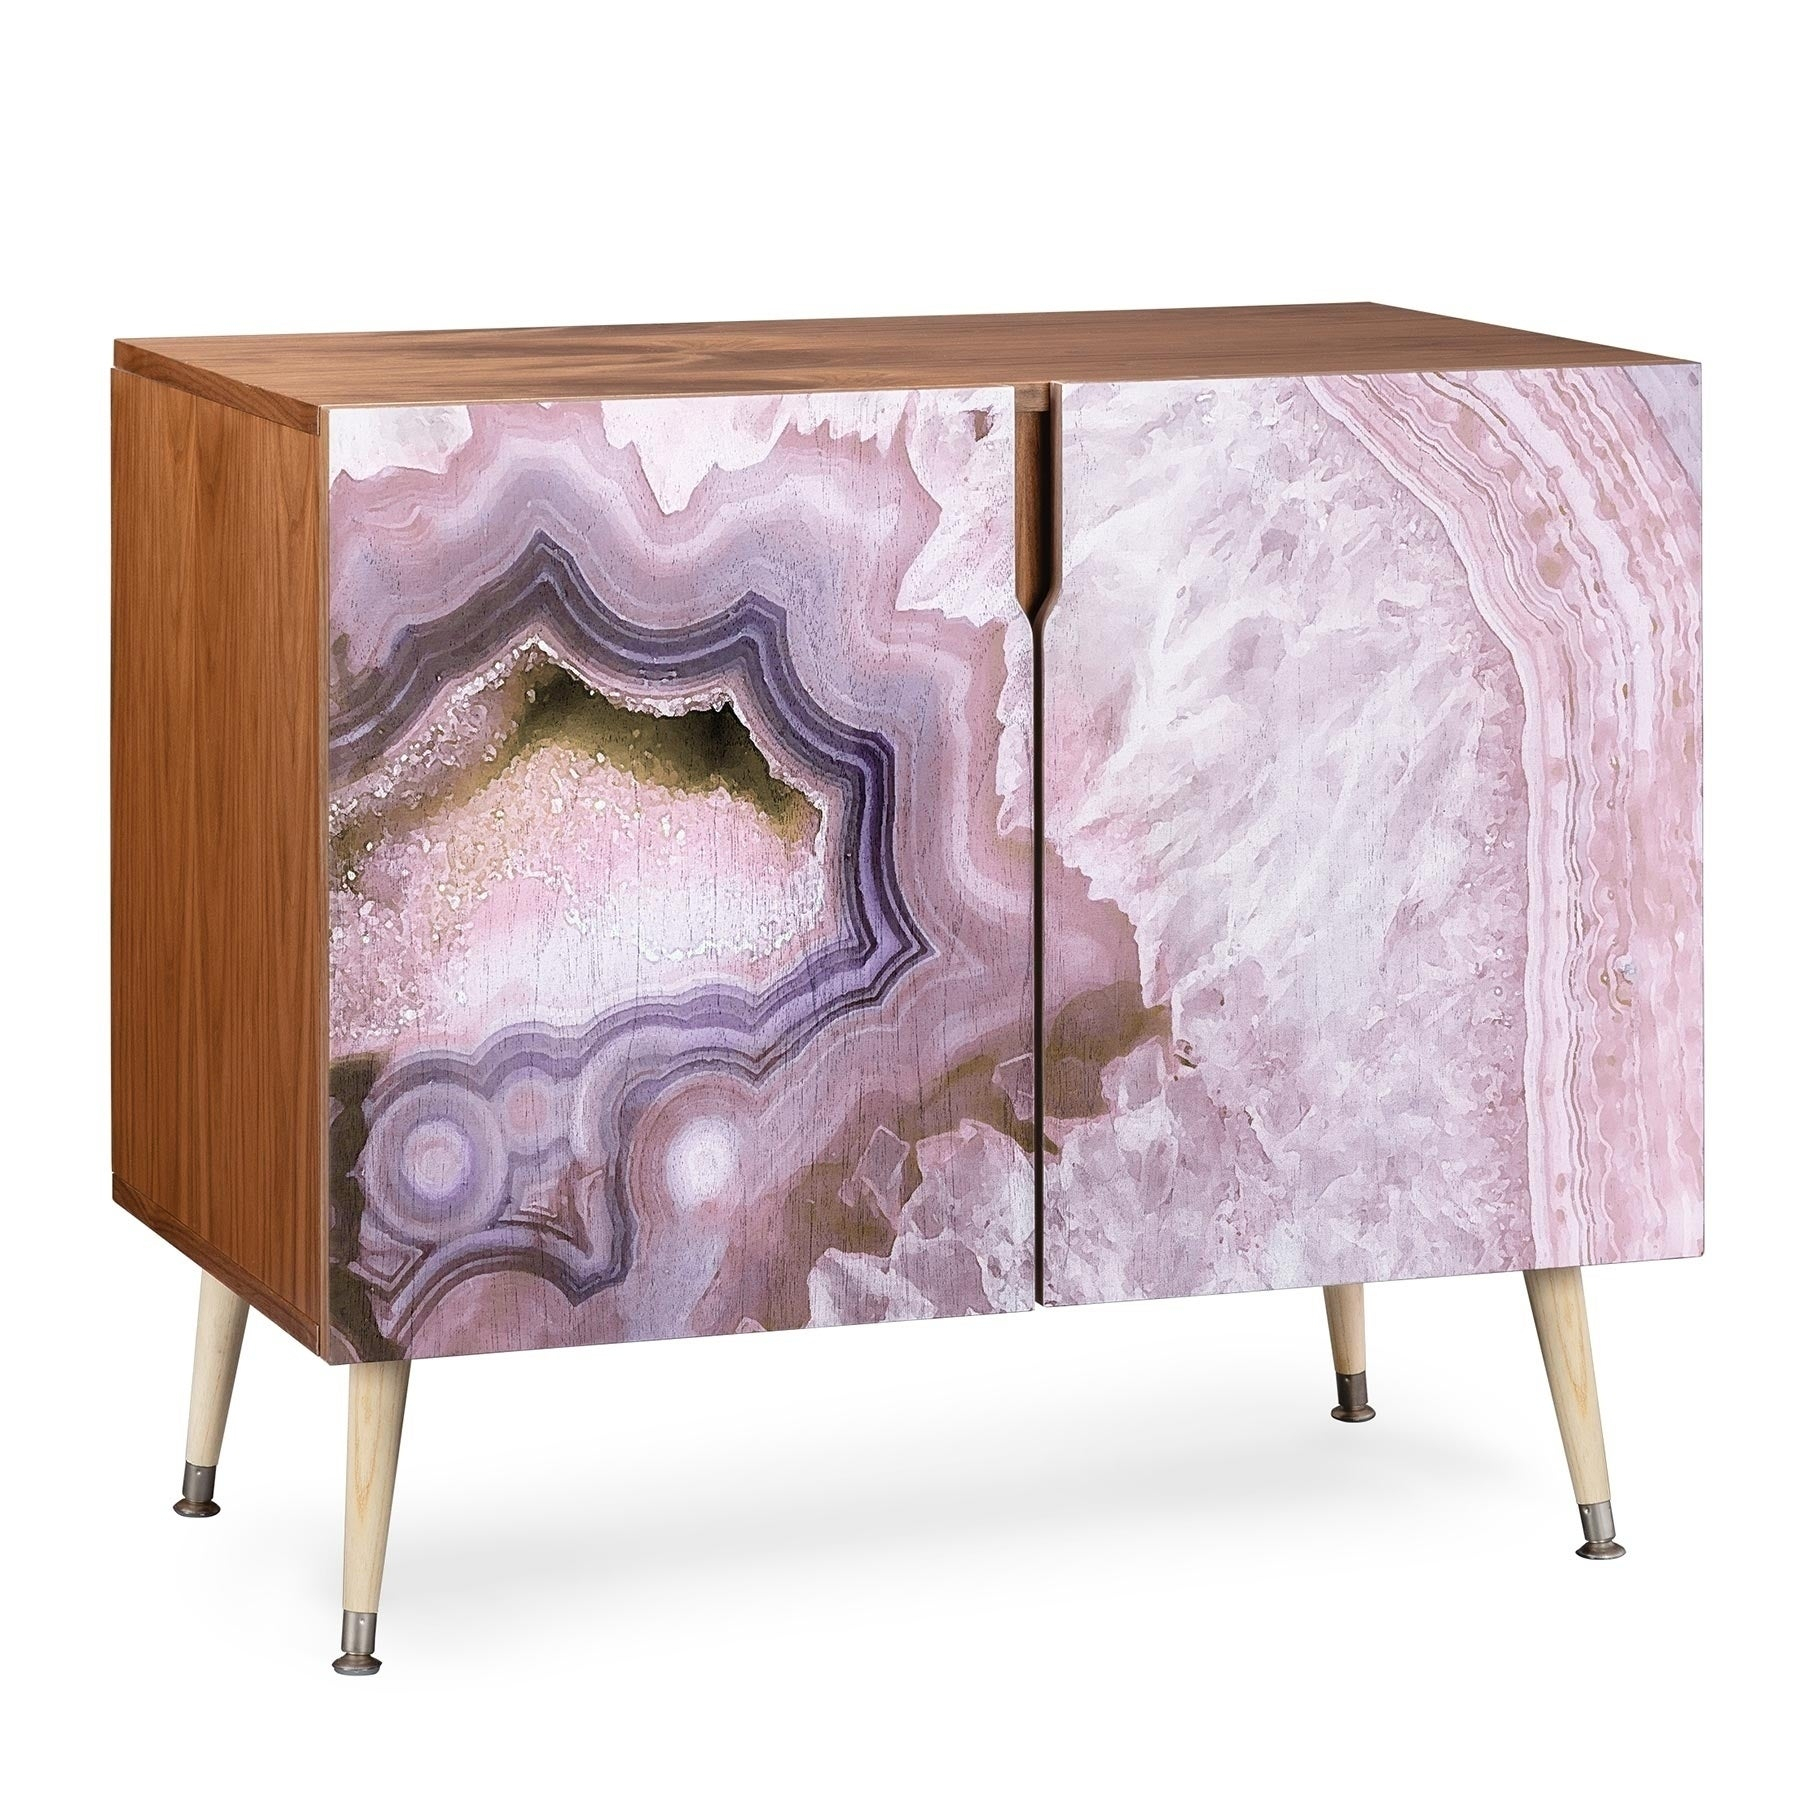 Deny Designs Pale Pink Agate Wood Credenza (3 Leg Options) With Regard To Pale Pink Bulbs Credenzas (Photo 12 of 30)